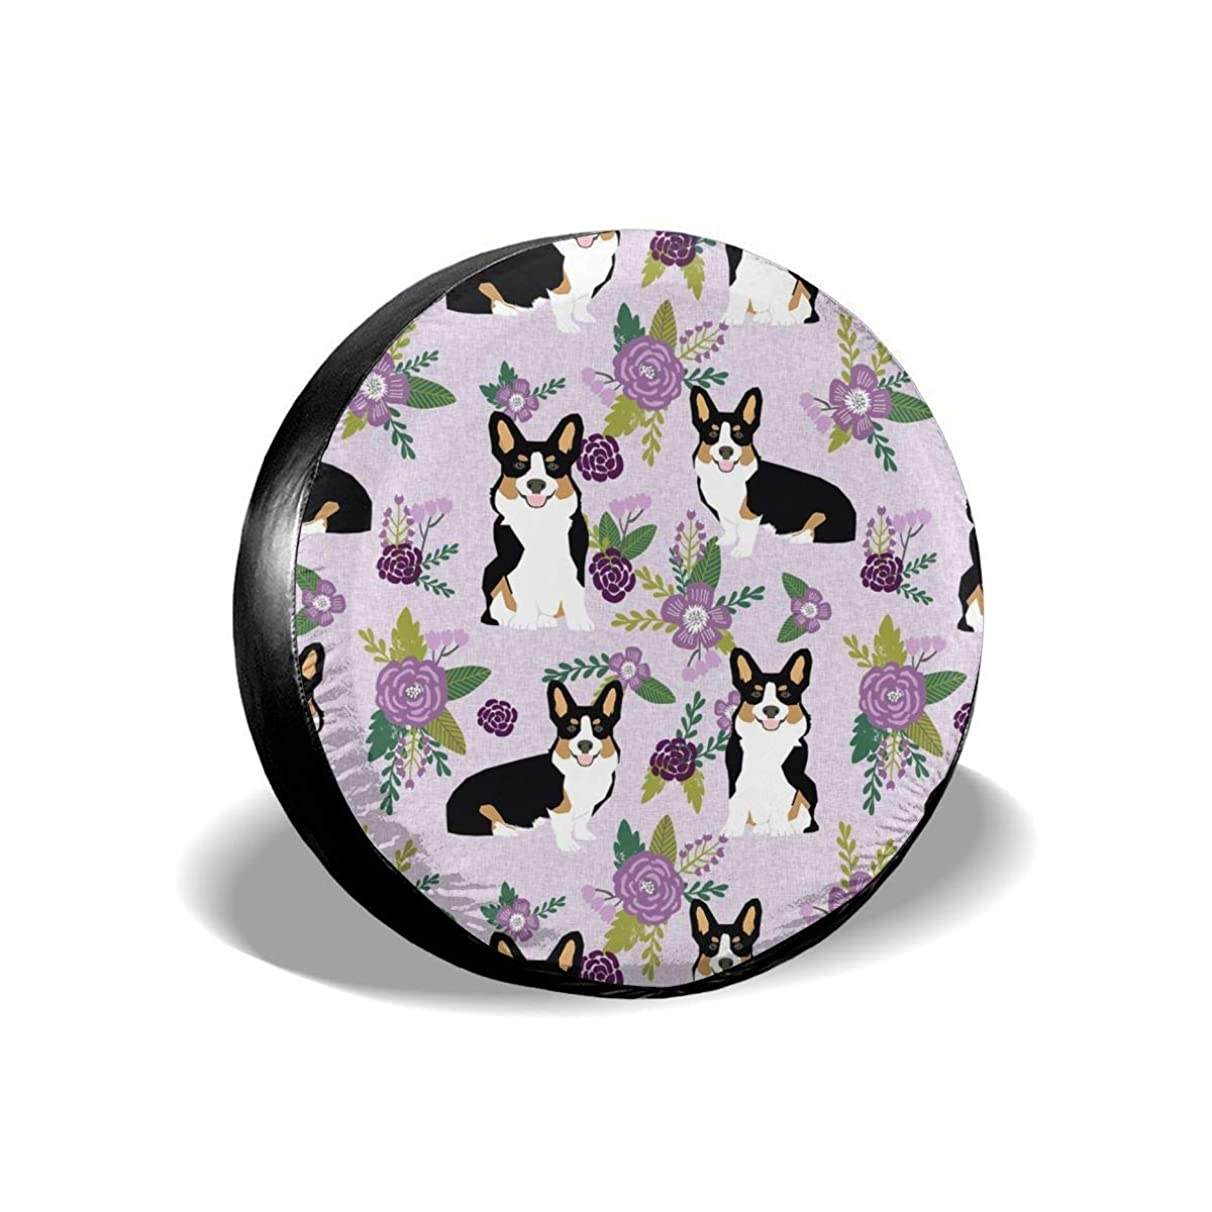 X-Large tri Corgi Dog pet c Dogs Florals Polyester Universal Spare Wheel Tire Cover Wheel Covers Jeep Trailer RV SUV Truck Camper Travel Trailer Accessories(14,15,16,17 Inch)